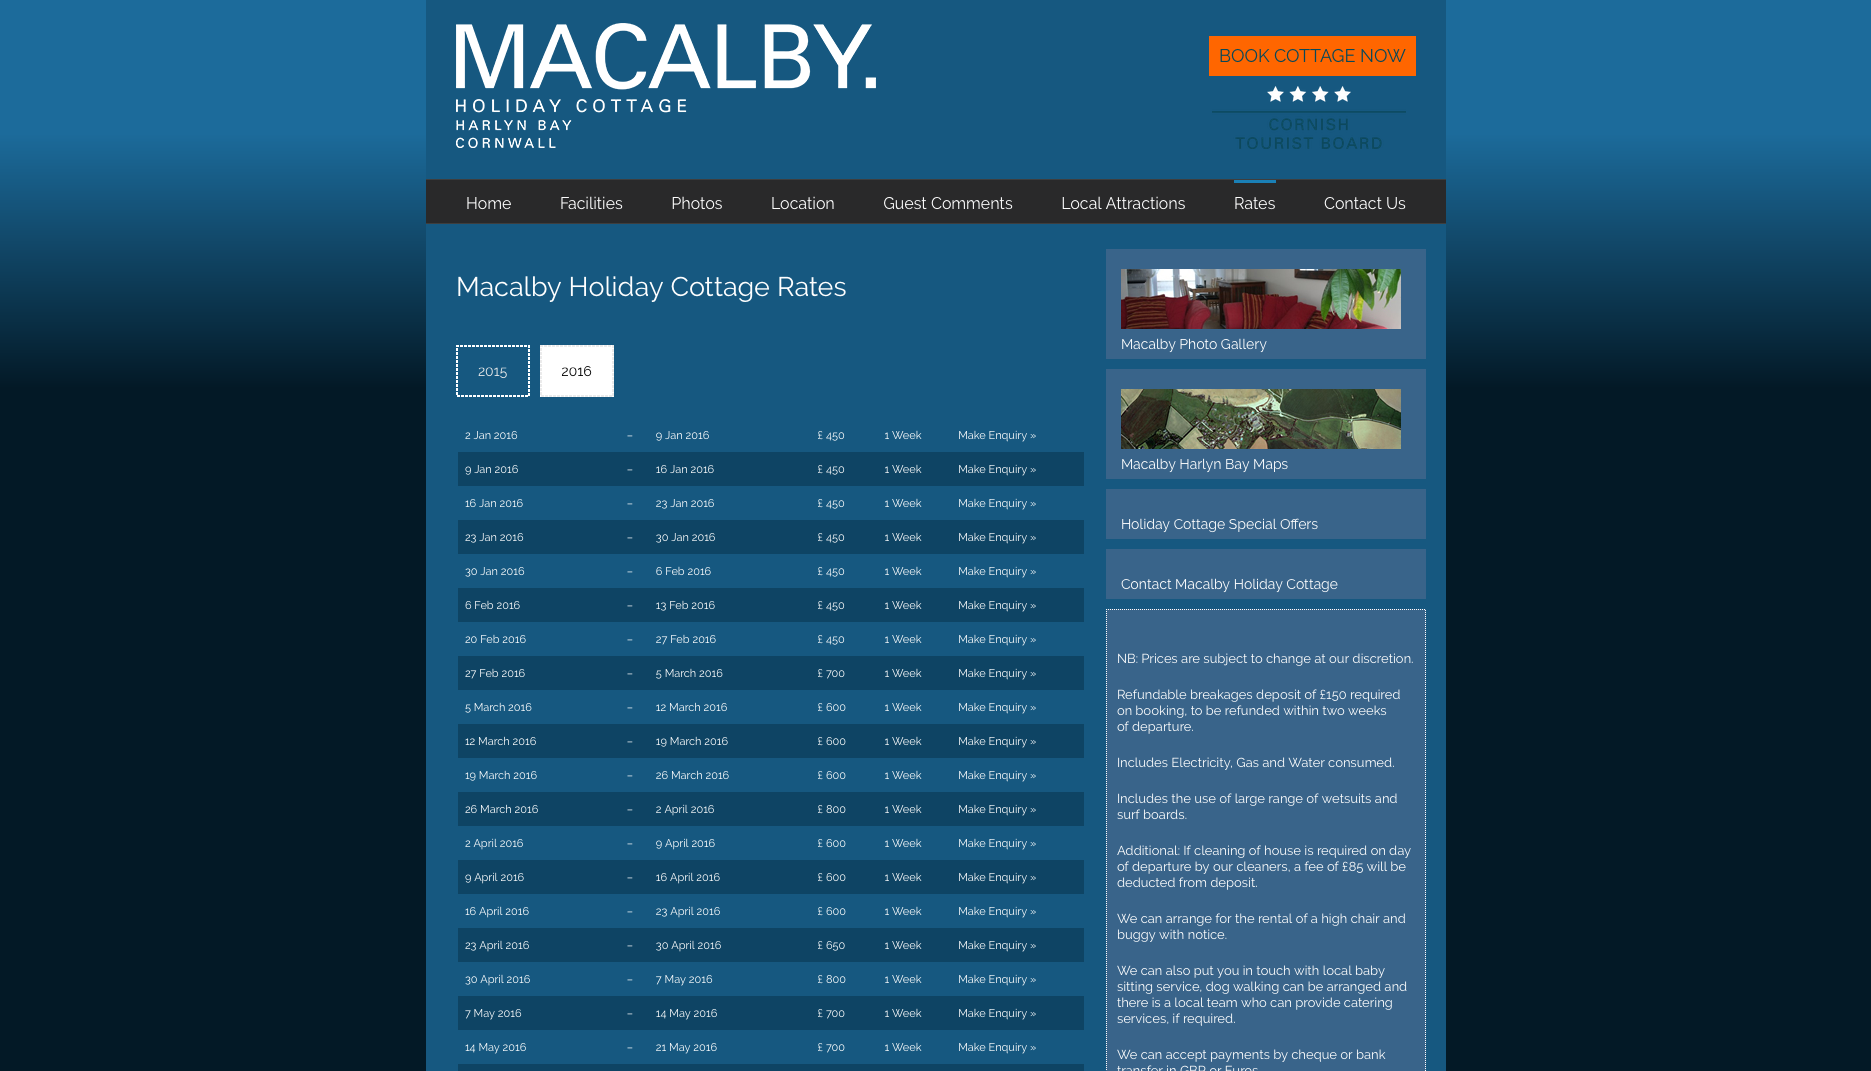 Macalby Cottage website rates page